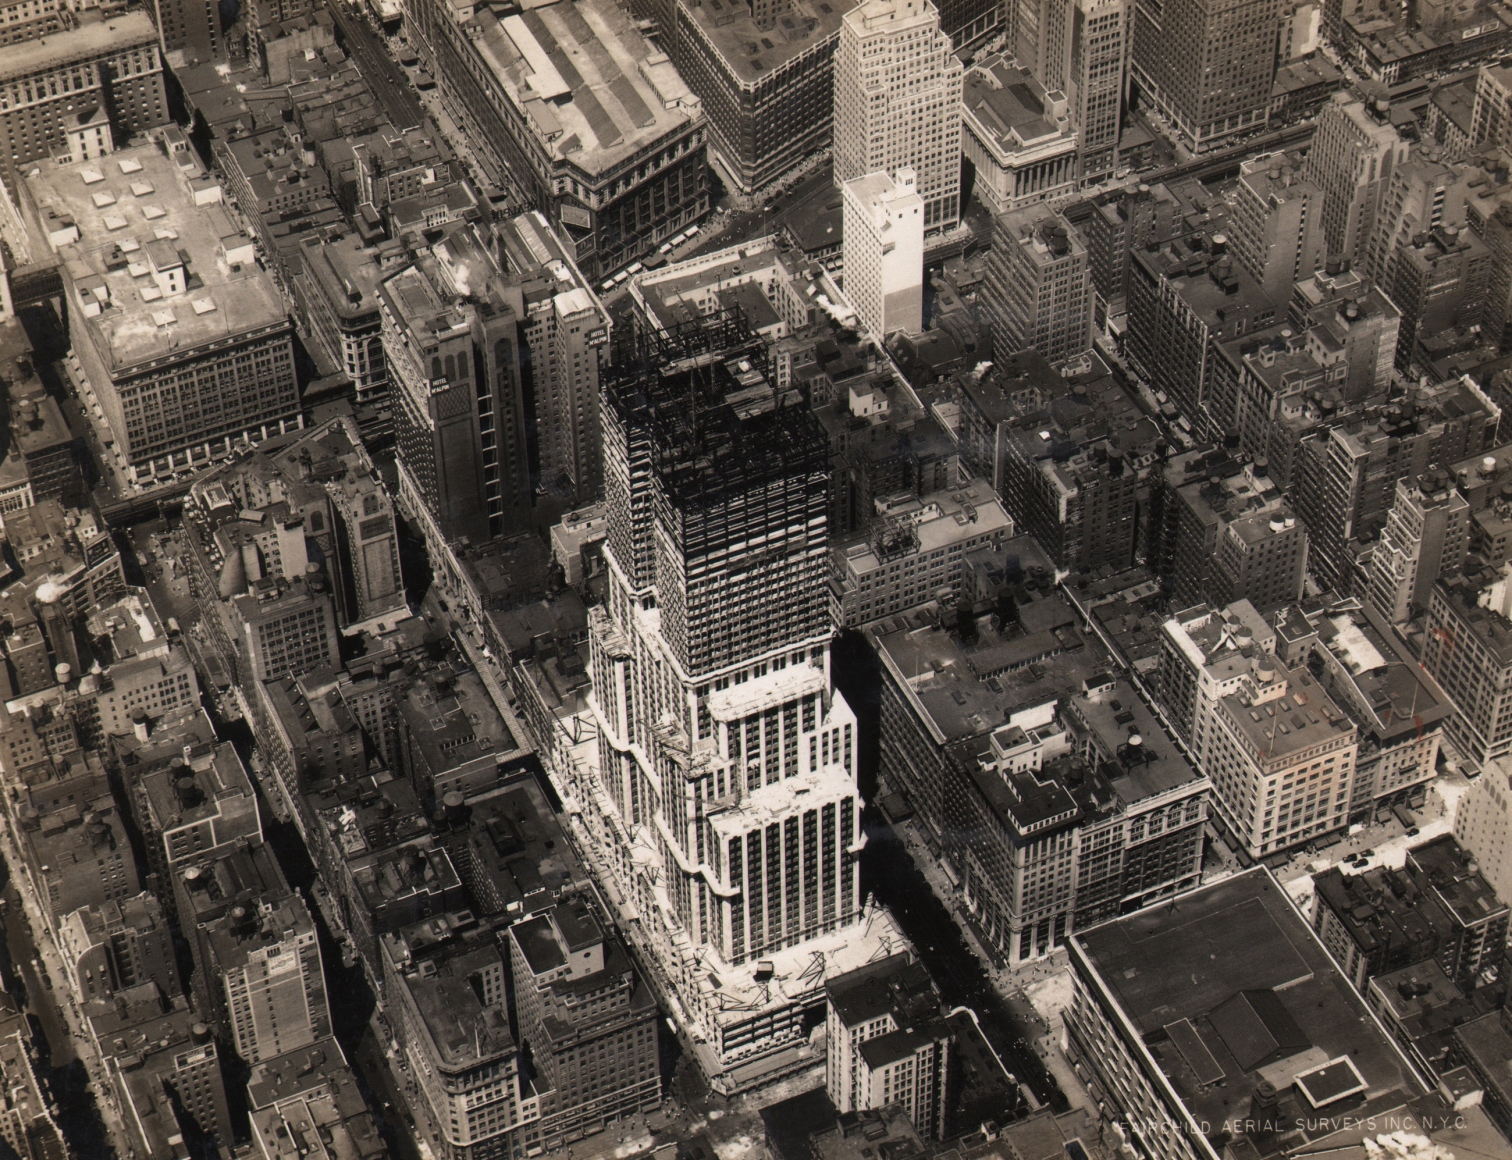 22. Fairchild Aerial Surveys, Empire State Building Construction, West 34th Street, New York City, 1930. Aerial view of the in-progress Empire State Building, built up to about half its total height.